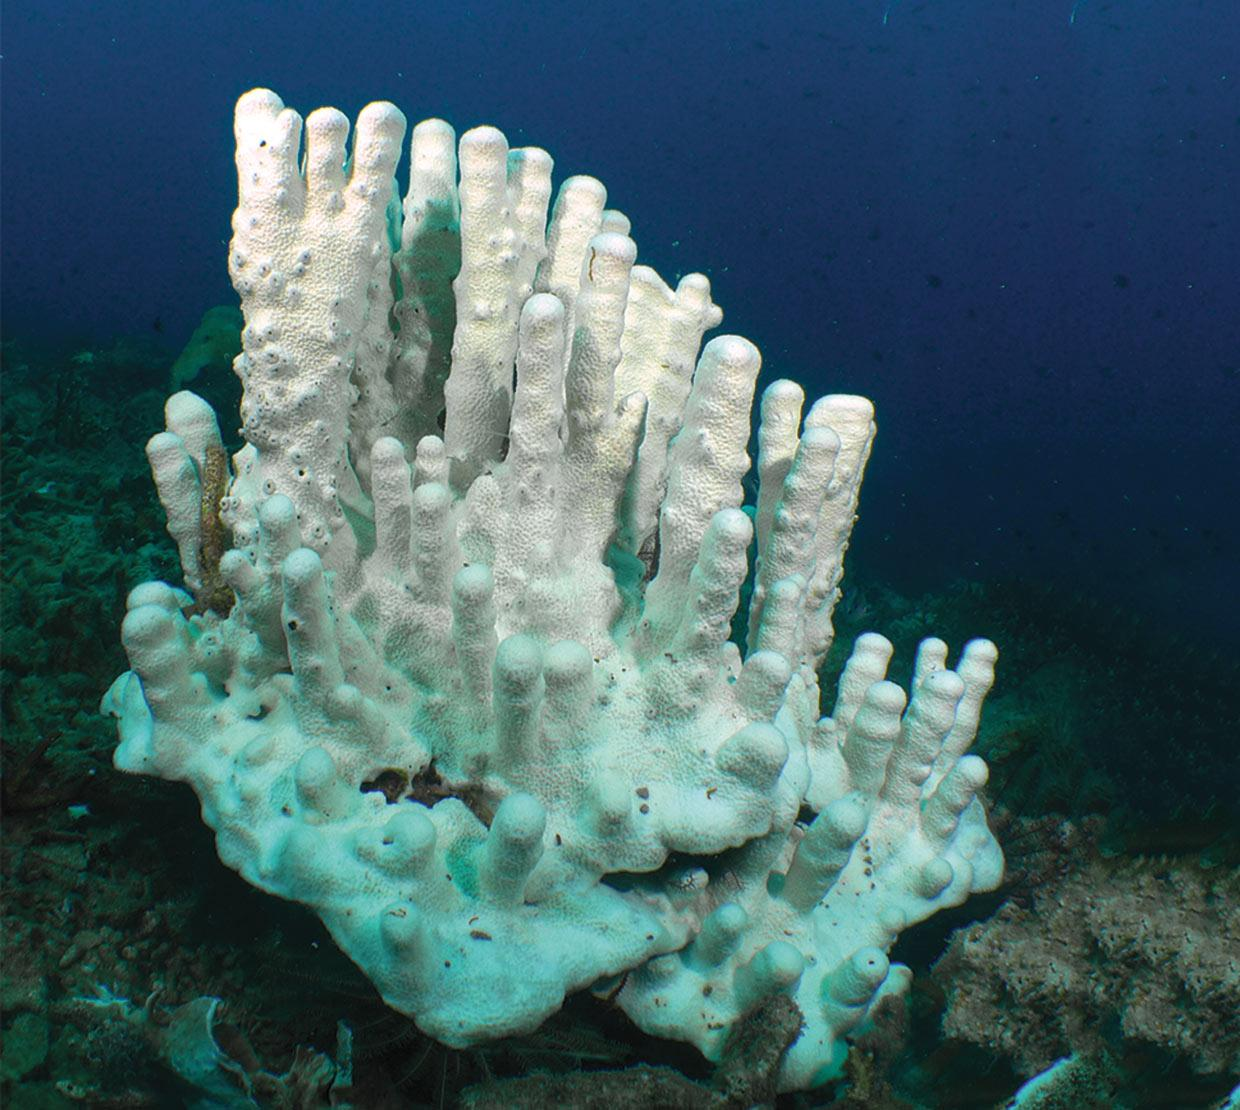 white coral at bottom floor of shallow ocean